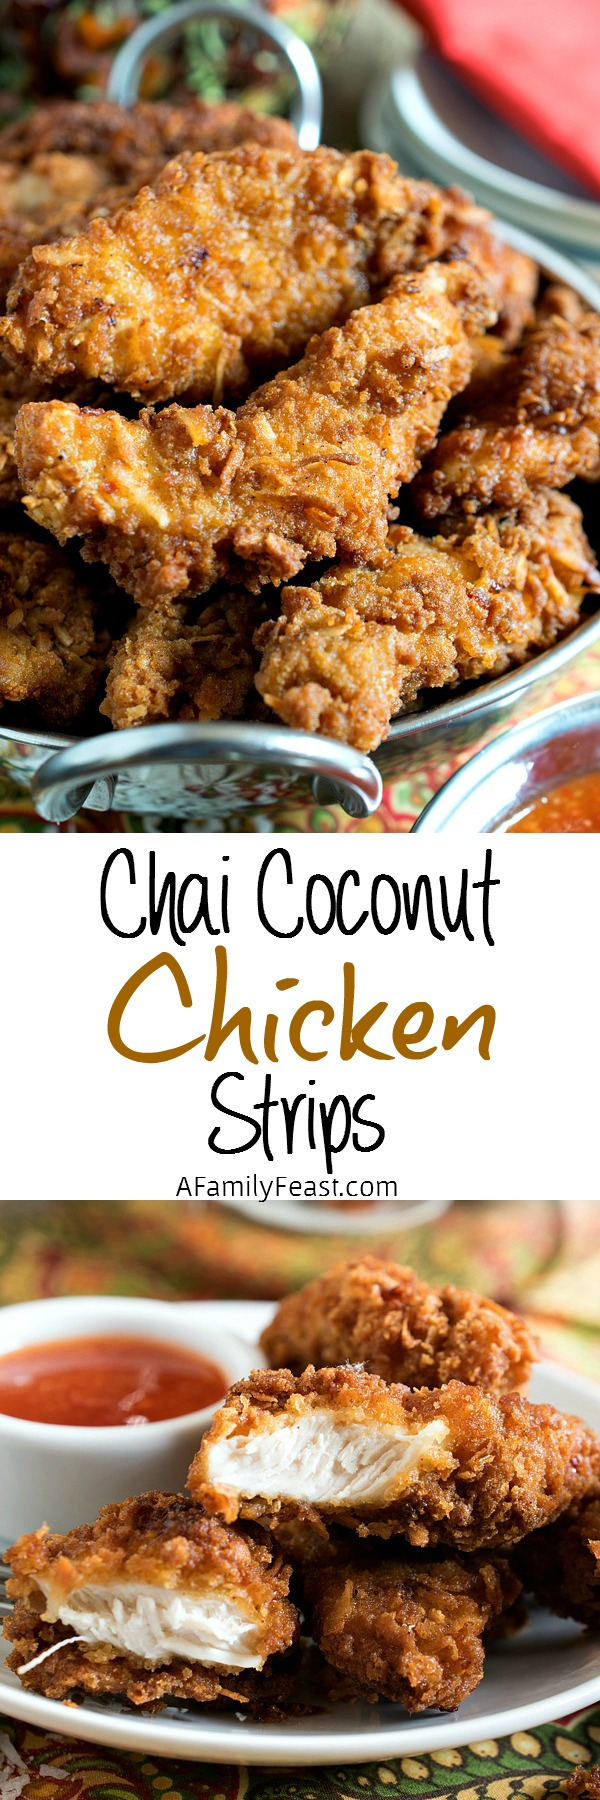 Chai Coconut Chicken Strips - Homemade chai spice mix and coconut add great flavor to these easy chicken strips!